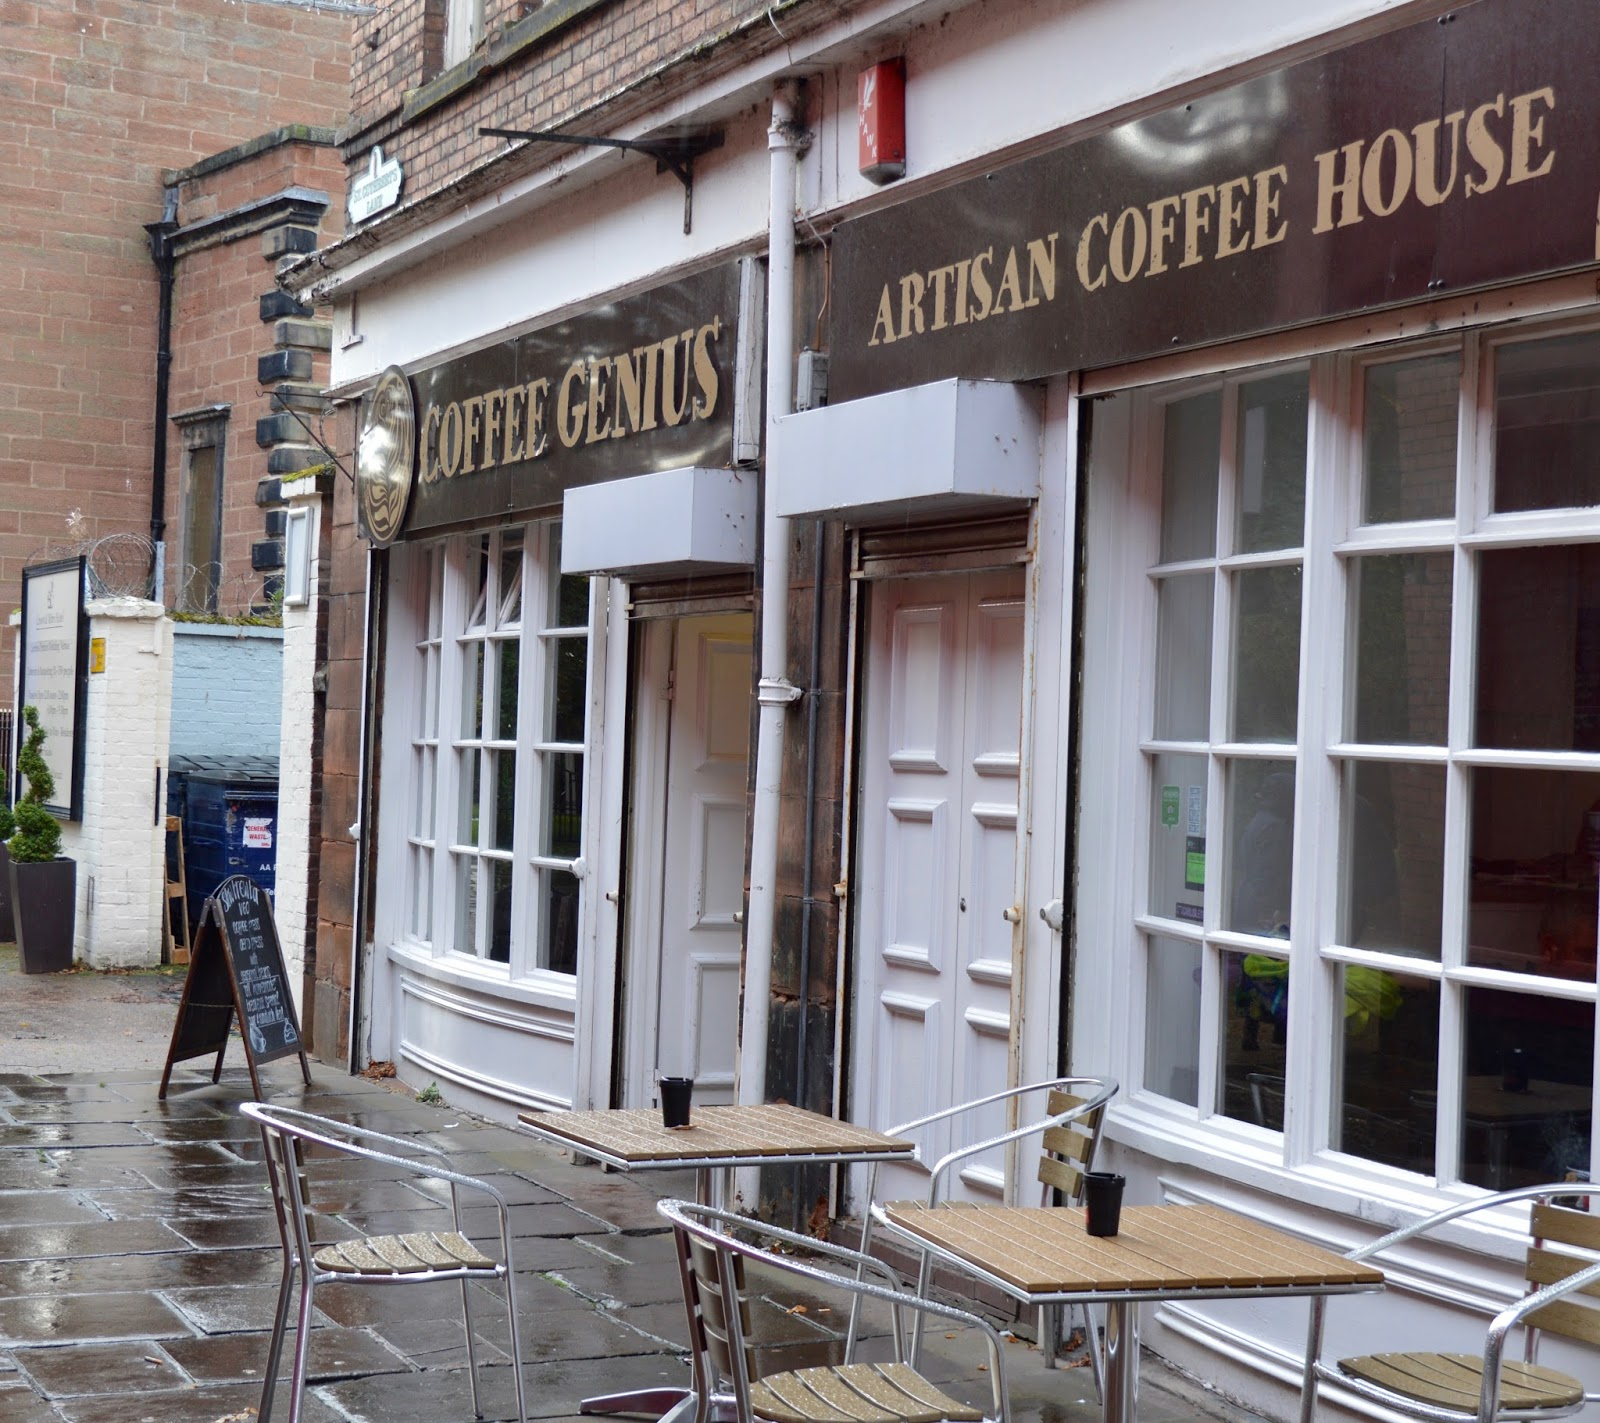 Great Days Out with Northern  | Our Day Trip to Carlisle by Train - Coffee Genius location